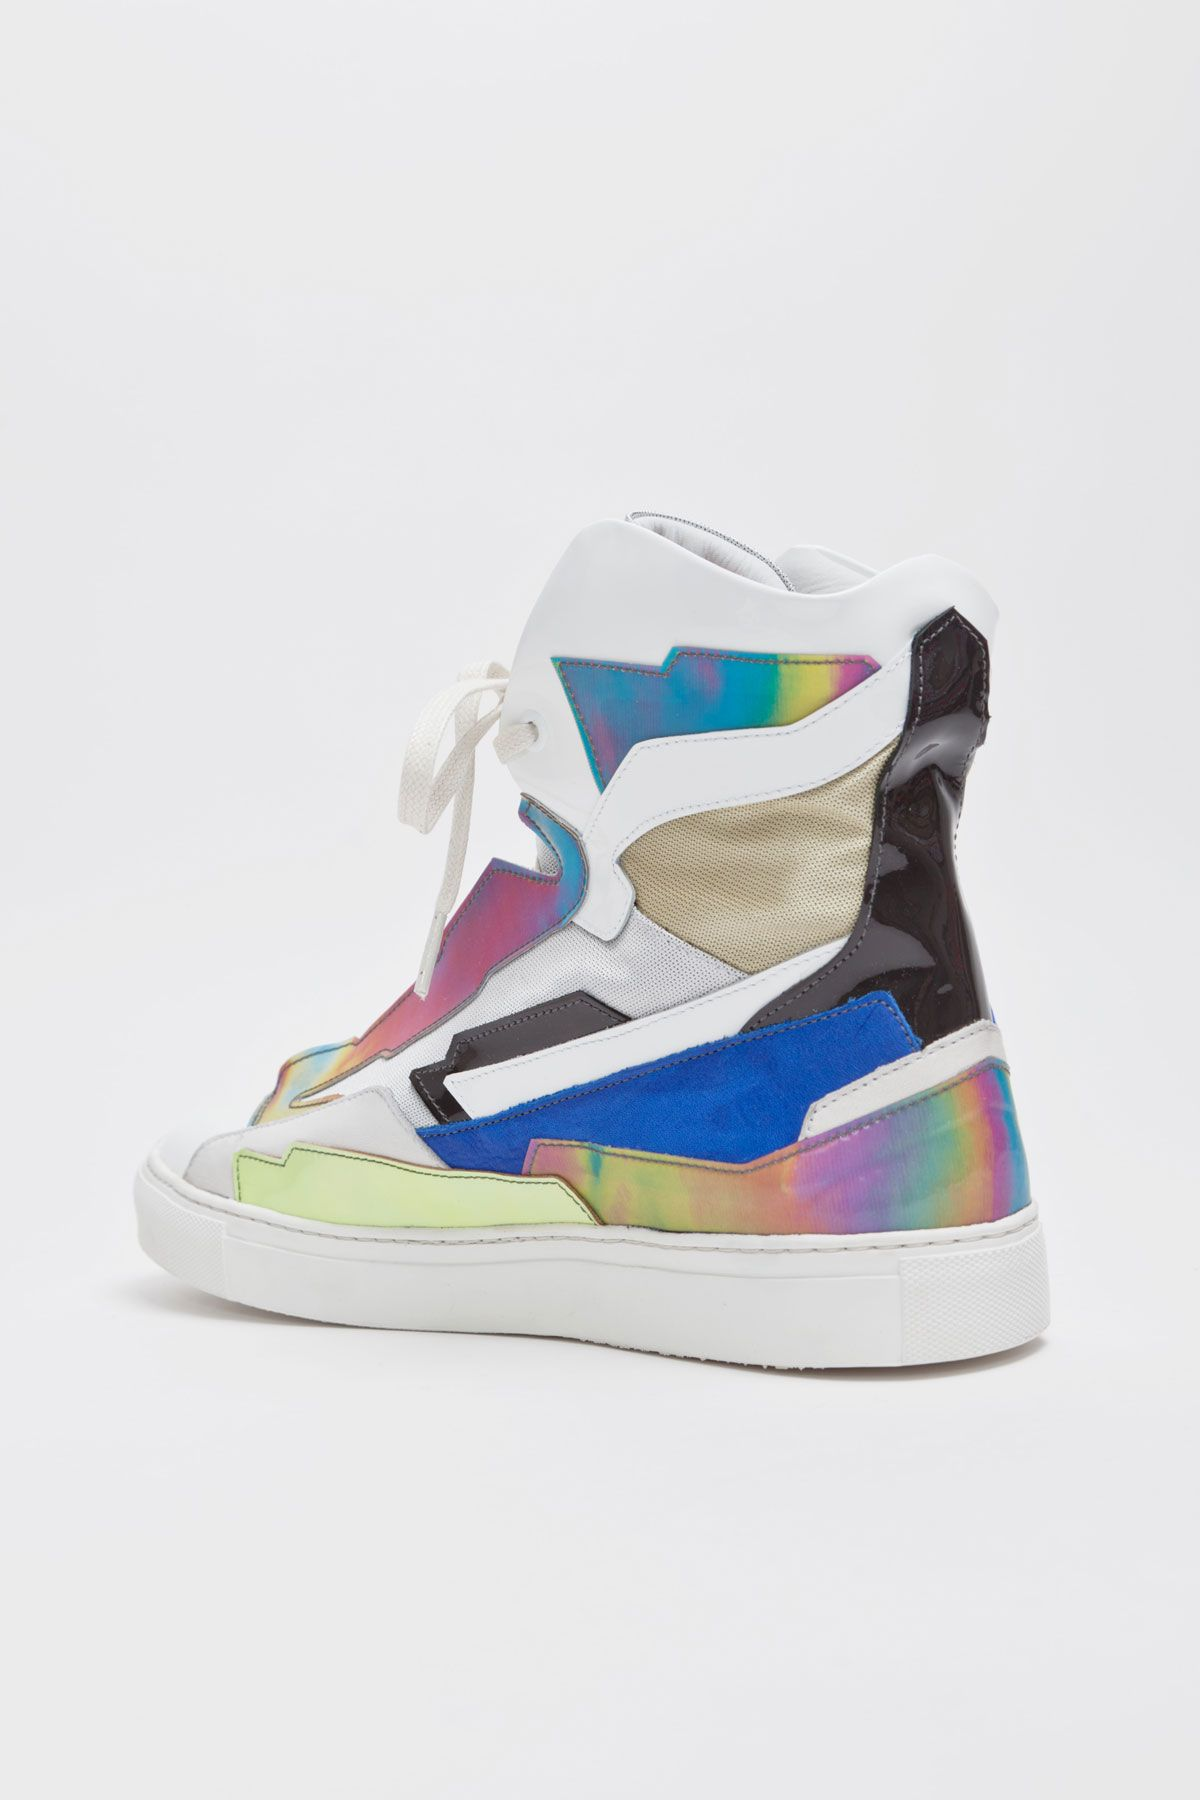 Raf Simons Holographic Space Sneakers